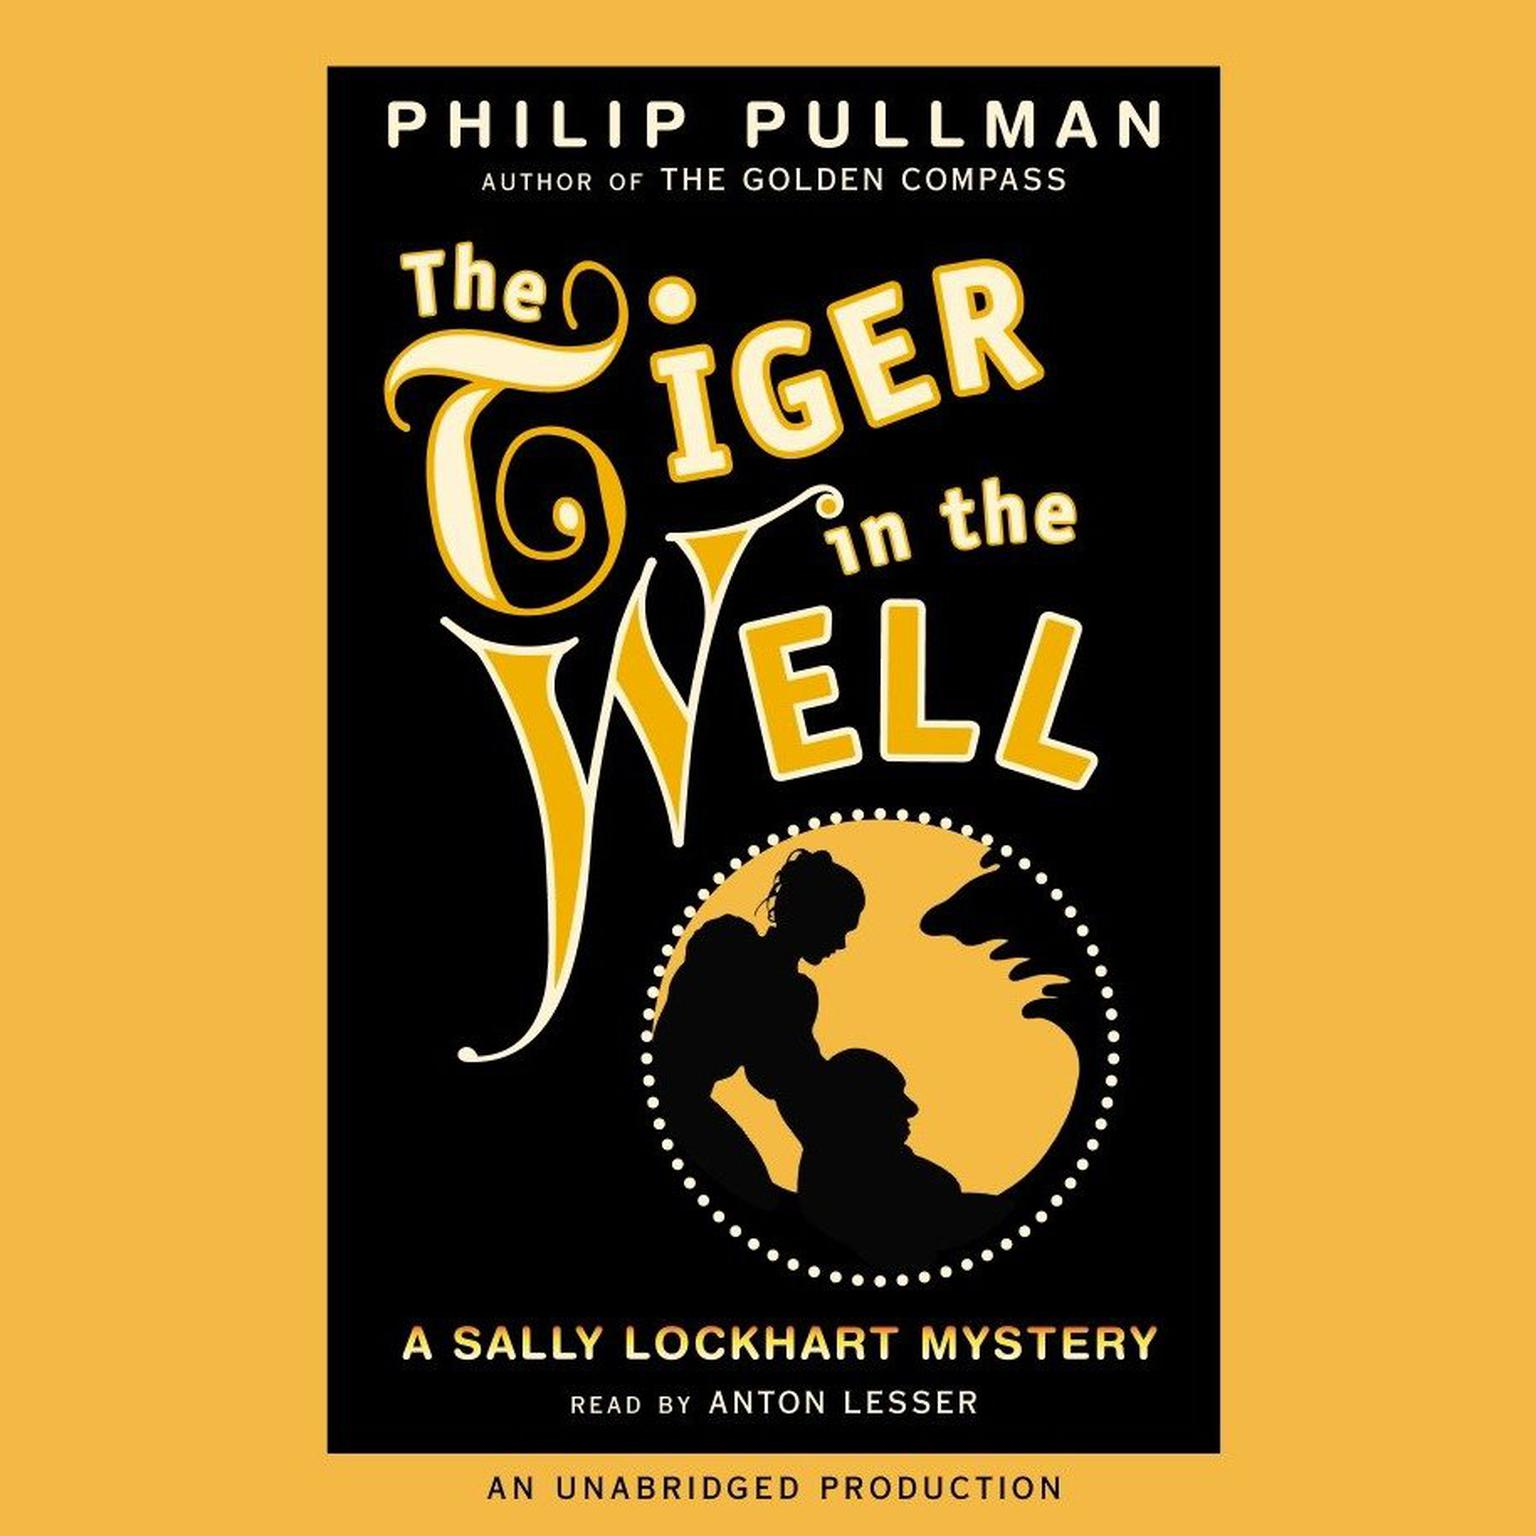 Printable A Sally Lockhart Mystery: The Tiger In the Well: Book Three Audiobook Cover Art